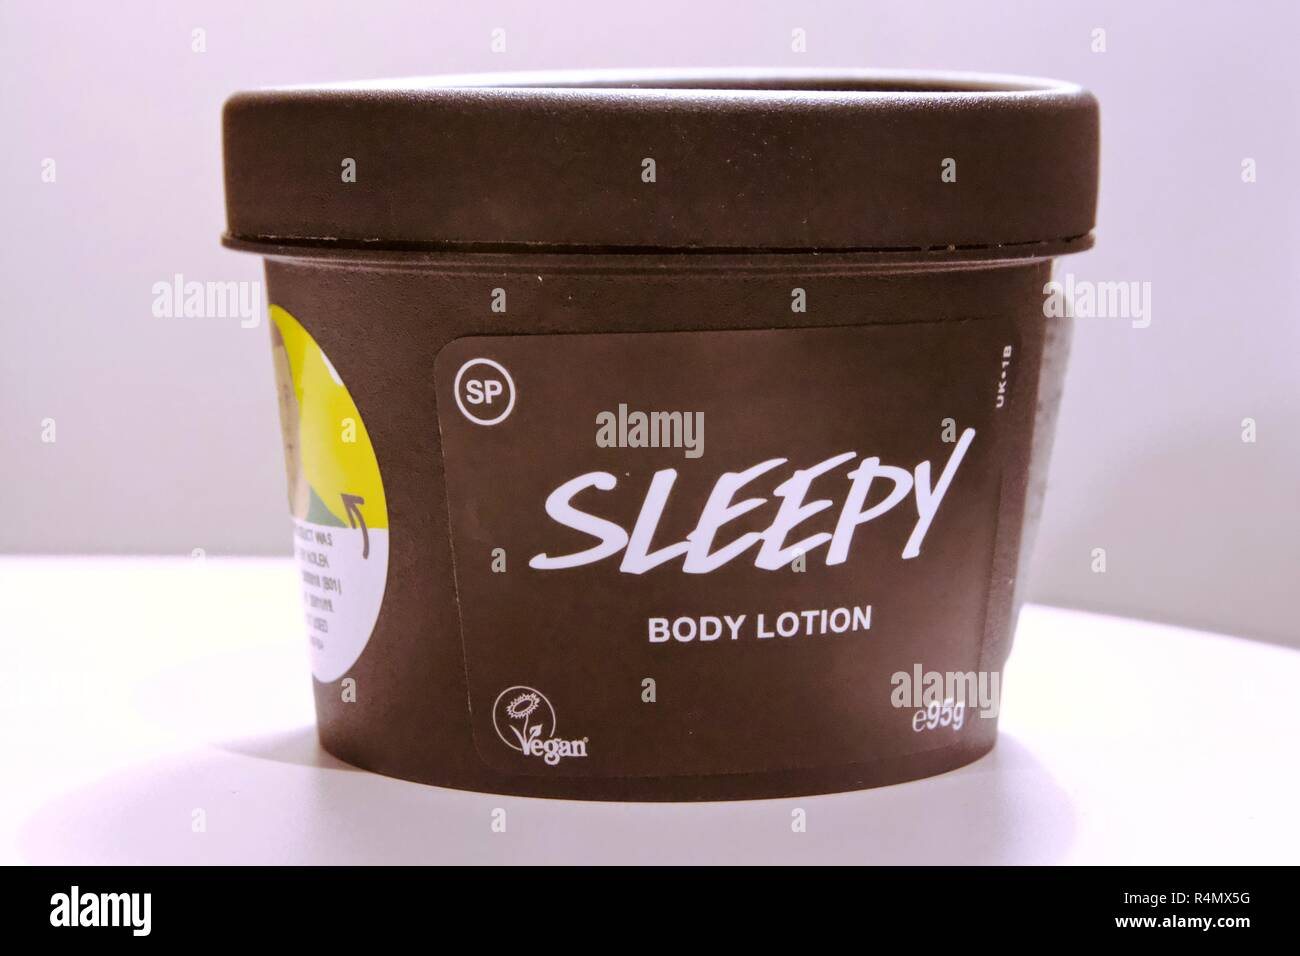 Lush Sleepy Body lotion is a vegan, cruelty free lotion made of lavender to help you fall asleep - Stock Image